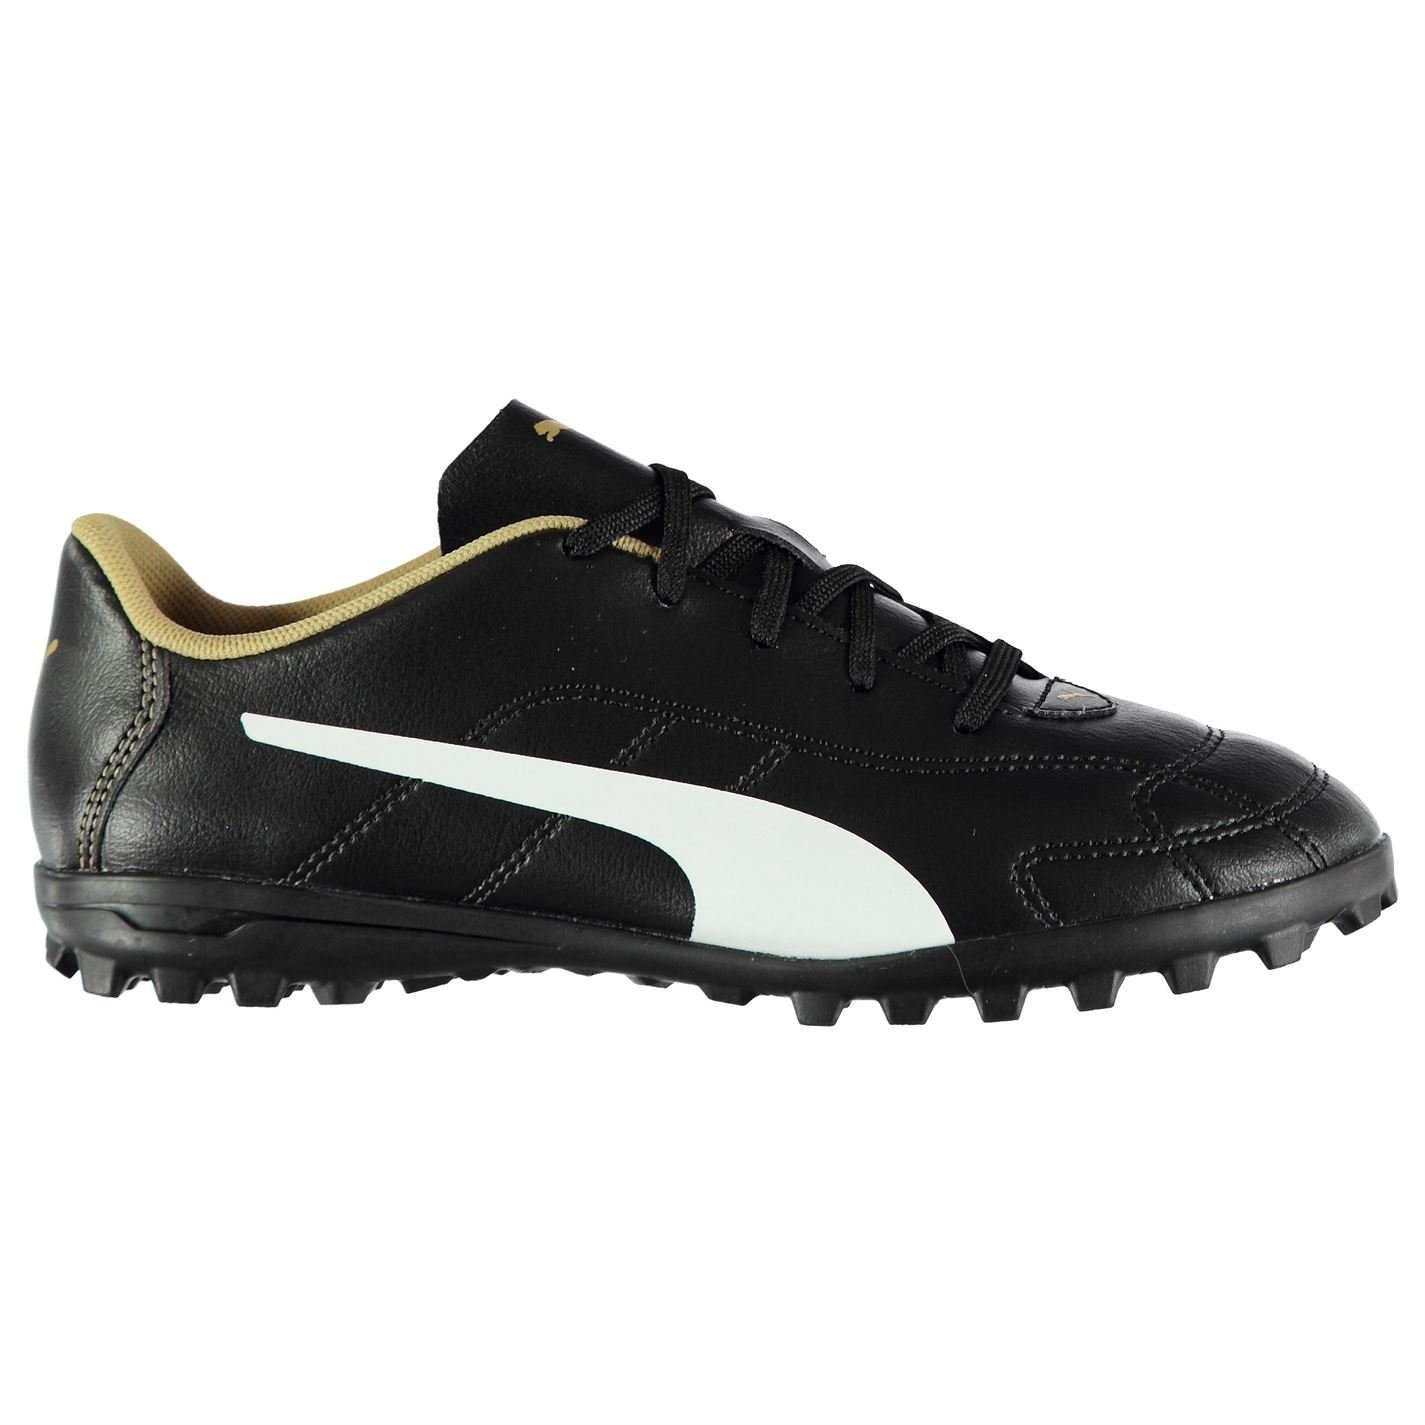 9ee2a25299c4 Puma Kids Classico Junior Astro Turf Trainers Football Boots Lace Up Padded  Black/White/Gold UK 5 (38): Amazon.co.uk: Clothing